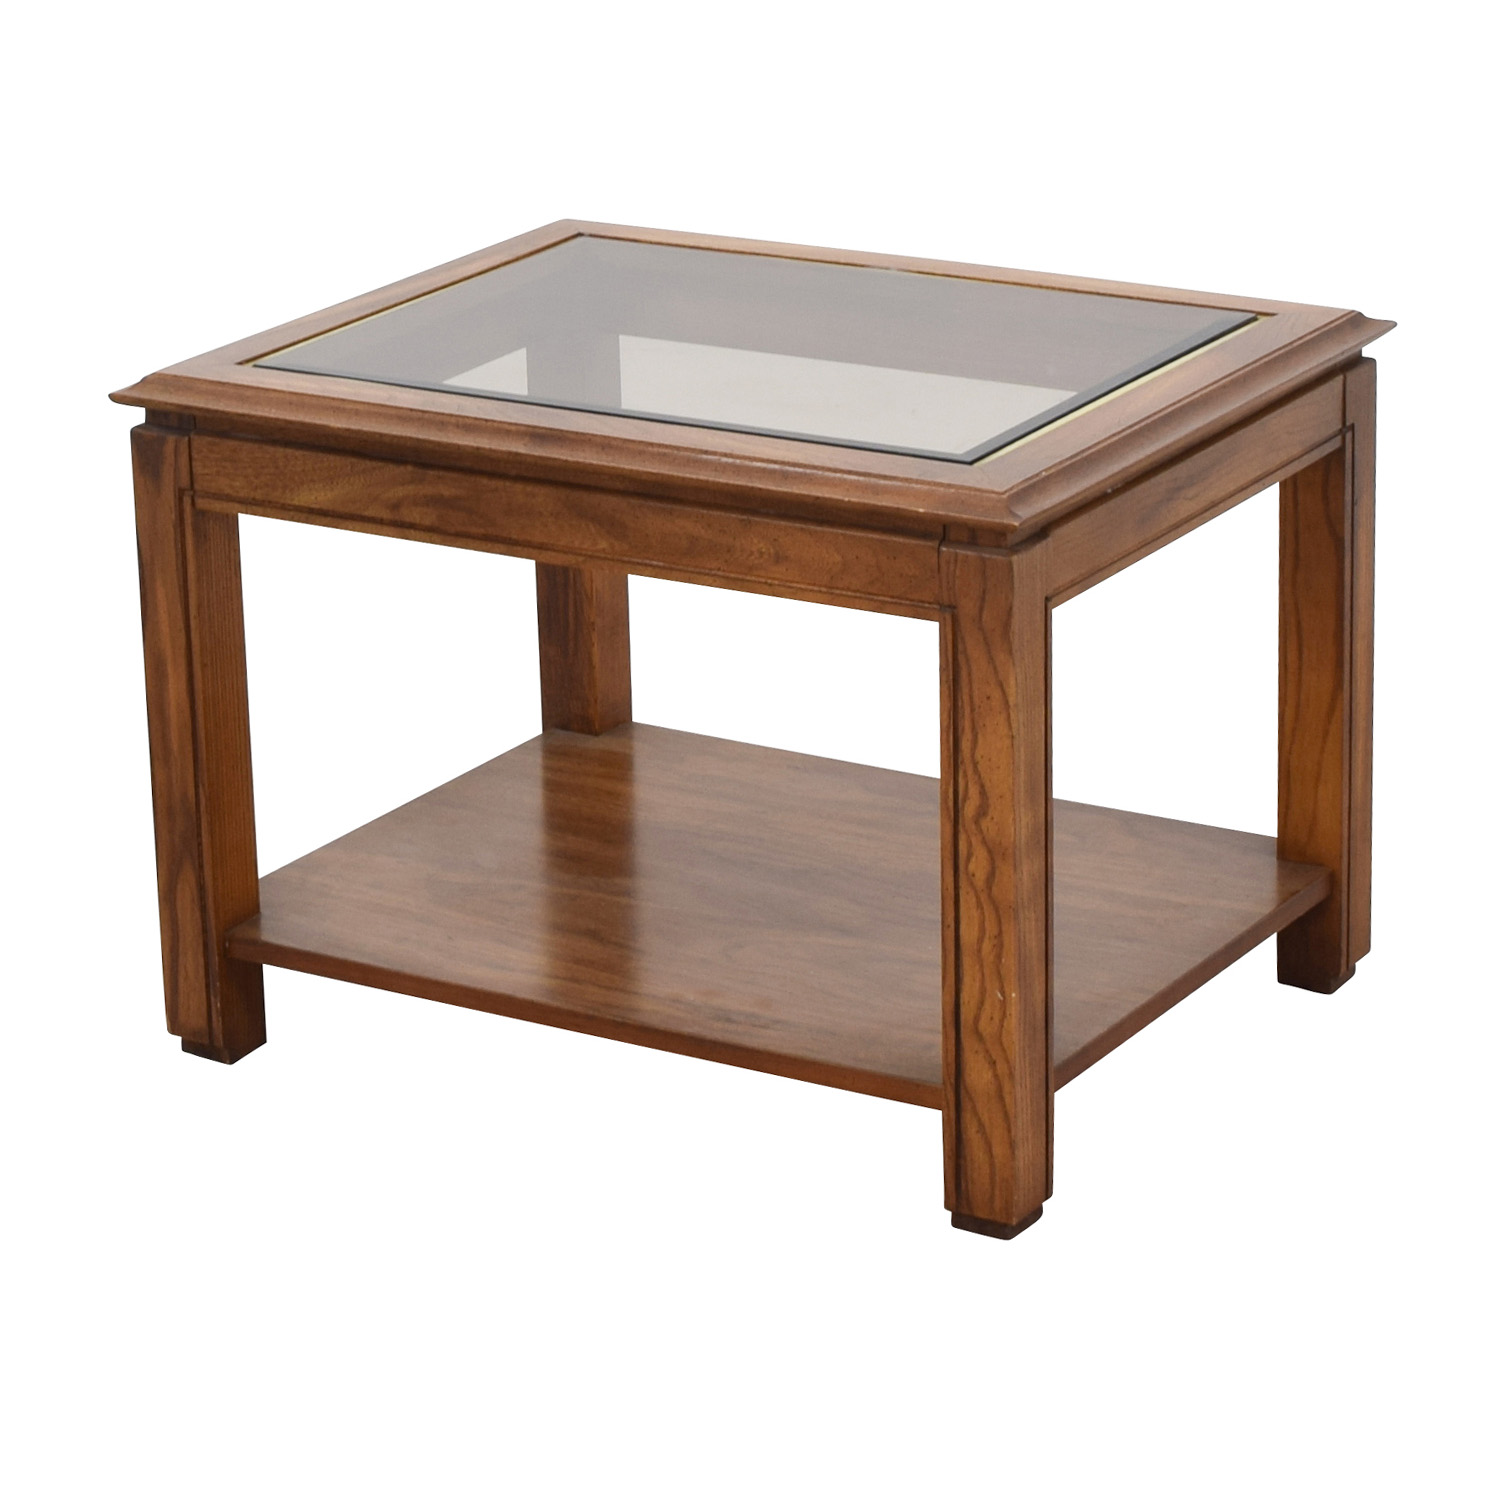 88 Off Walnut And Glass Rectangular Coffee Table Tables